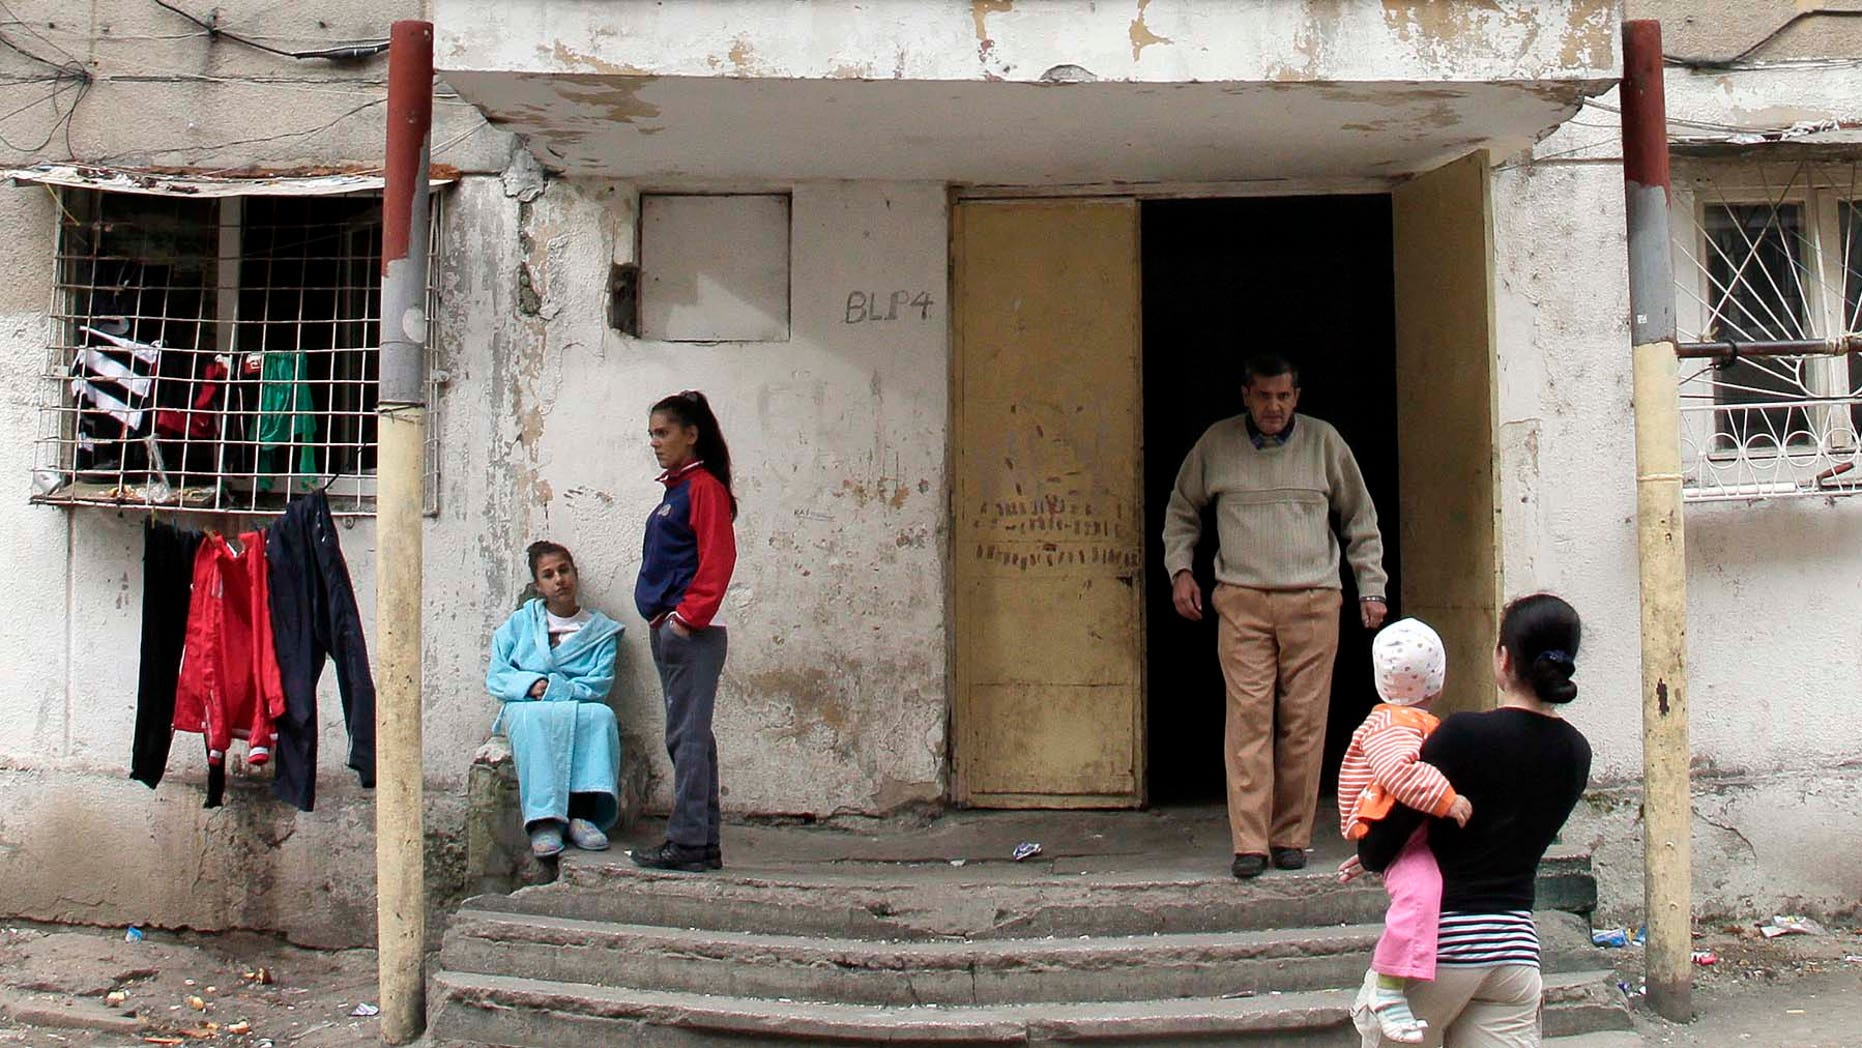 """Romanian Gypsy residents are seen outside the apartment block that was home to Romanian girl that gave birth in Spain last week in Bucharest, Romania, Tuesday, Nov. 9, 2010. The former neighbors of a Romanian girl who gave birth last week in Spain on Tuesday claimed that she is more than 10 years old. Neighbors gathered outside the shabby four-story apartment building where the girl spent her early years before moving to Spain. They told the Associated Press they were indignant about """"lies"""" that the girl was just 10 when she became a mother. Several neighbors in Bucharest's impoverished Ferentari district said they believed she was between 13 and 15 years old.(AP Photo/Vadim Ghirda)"""